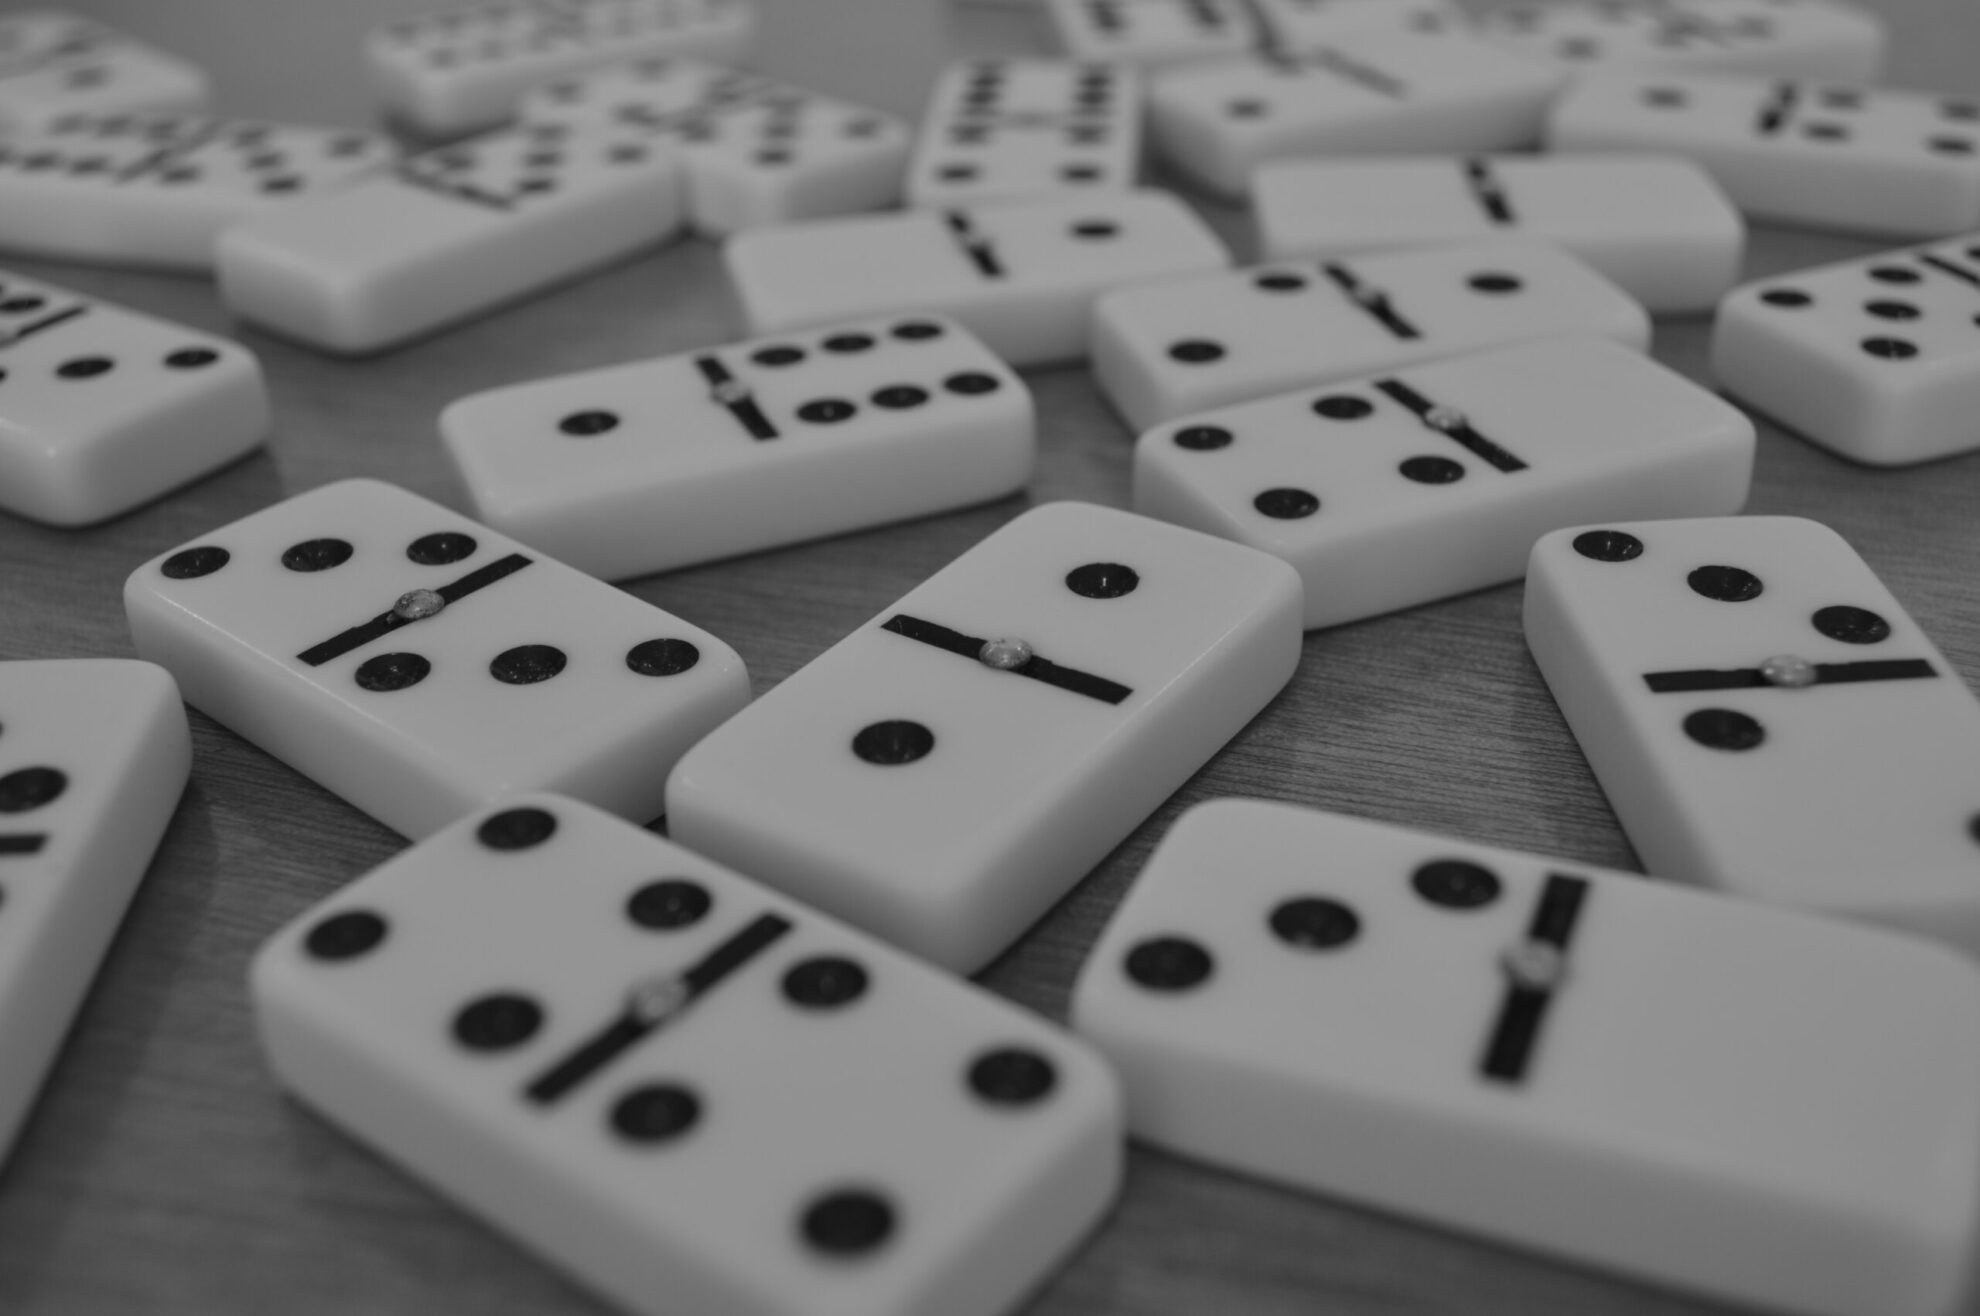 A bunch of dominos, which can be used to play games with children while practicing music